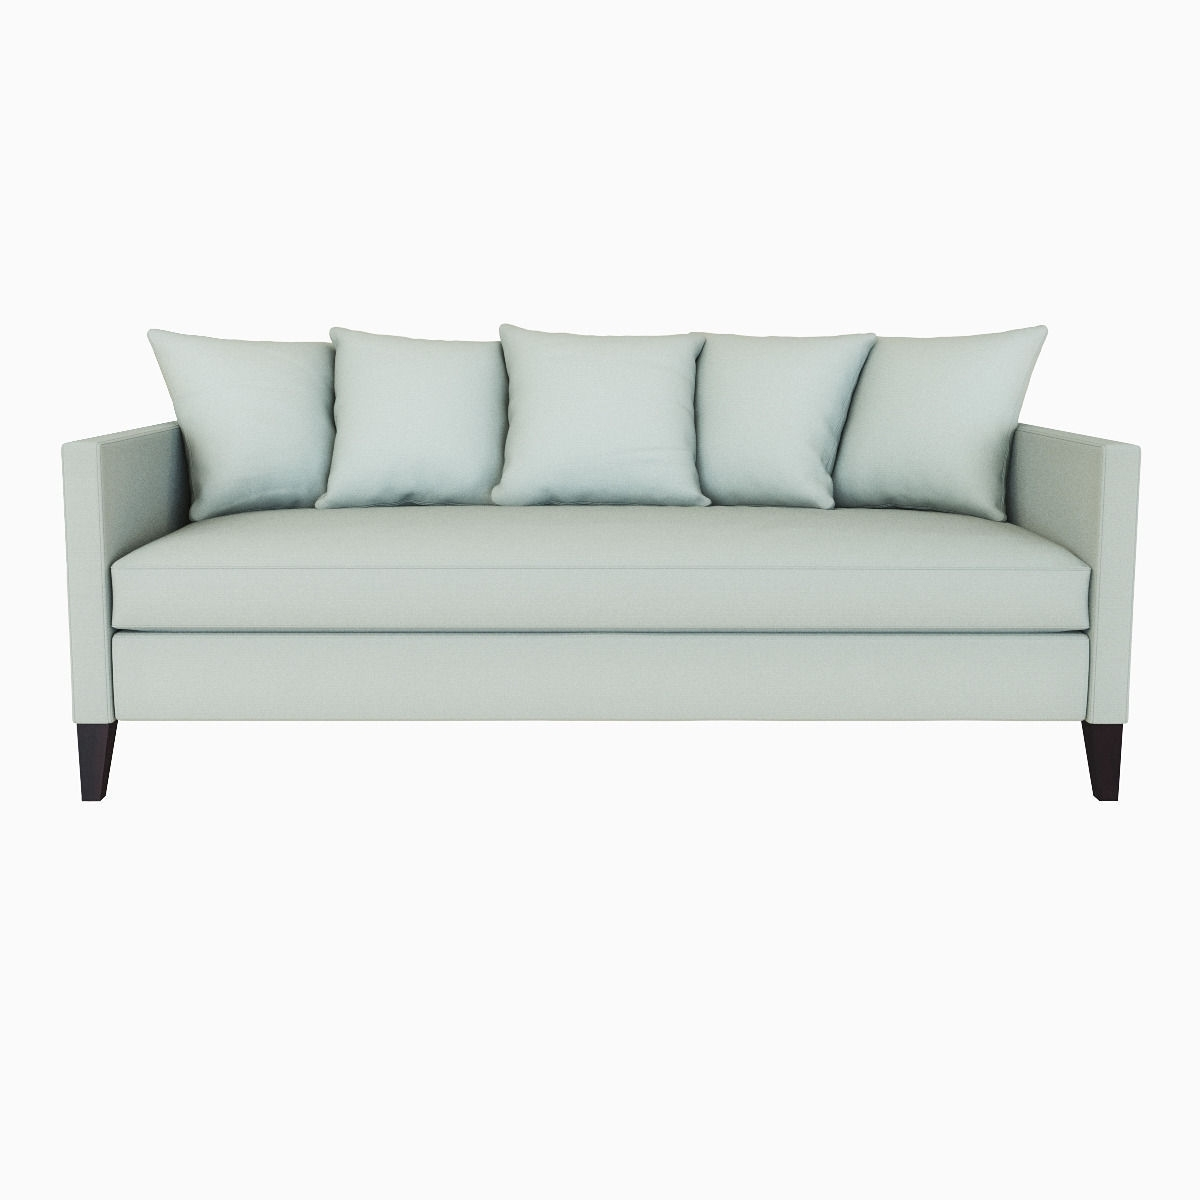 Popular West Elm Dunham Down Filled Sofa – Toss Back 3D Model Max Obj Fbx Mtl Within Down Filled Sofas (View 14 of 20)